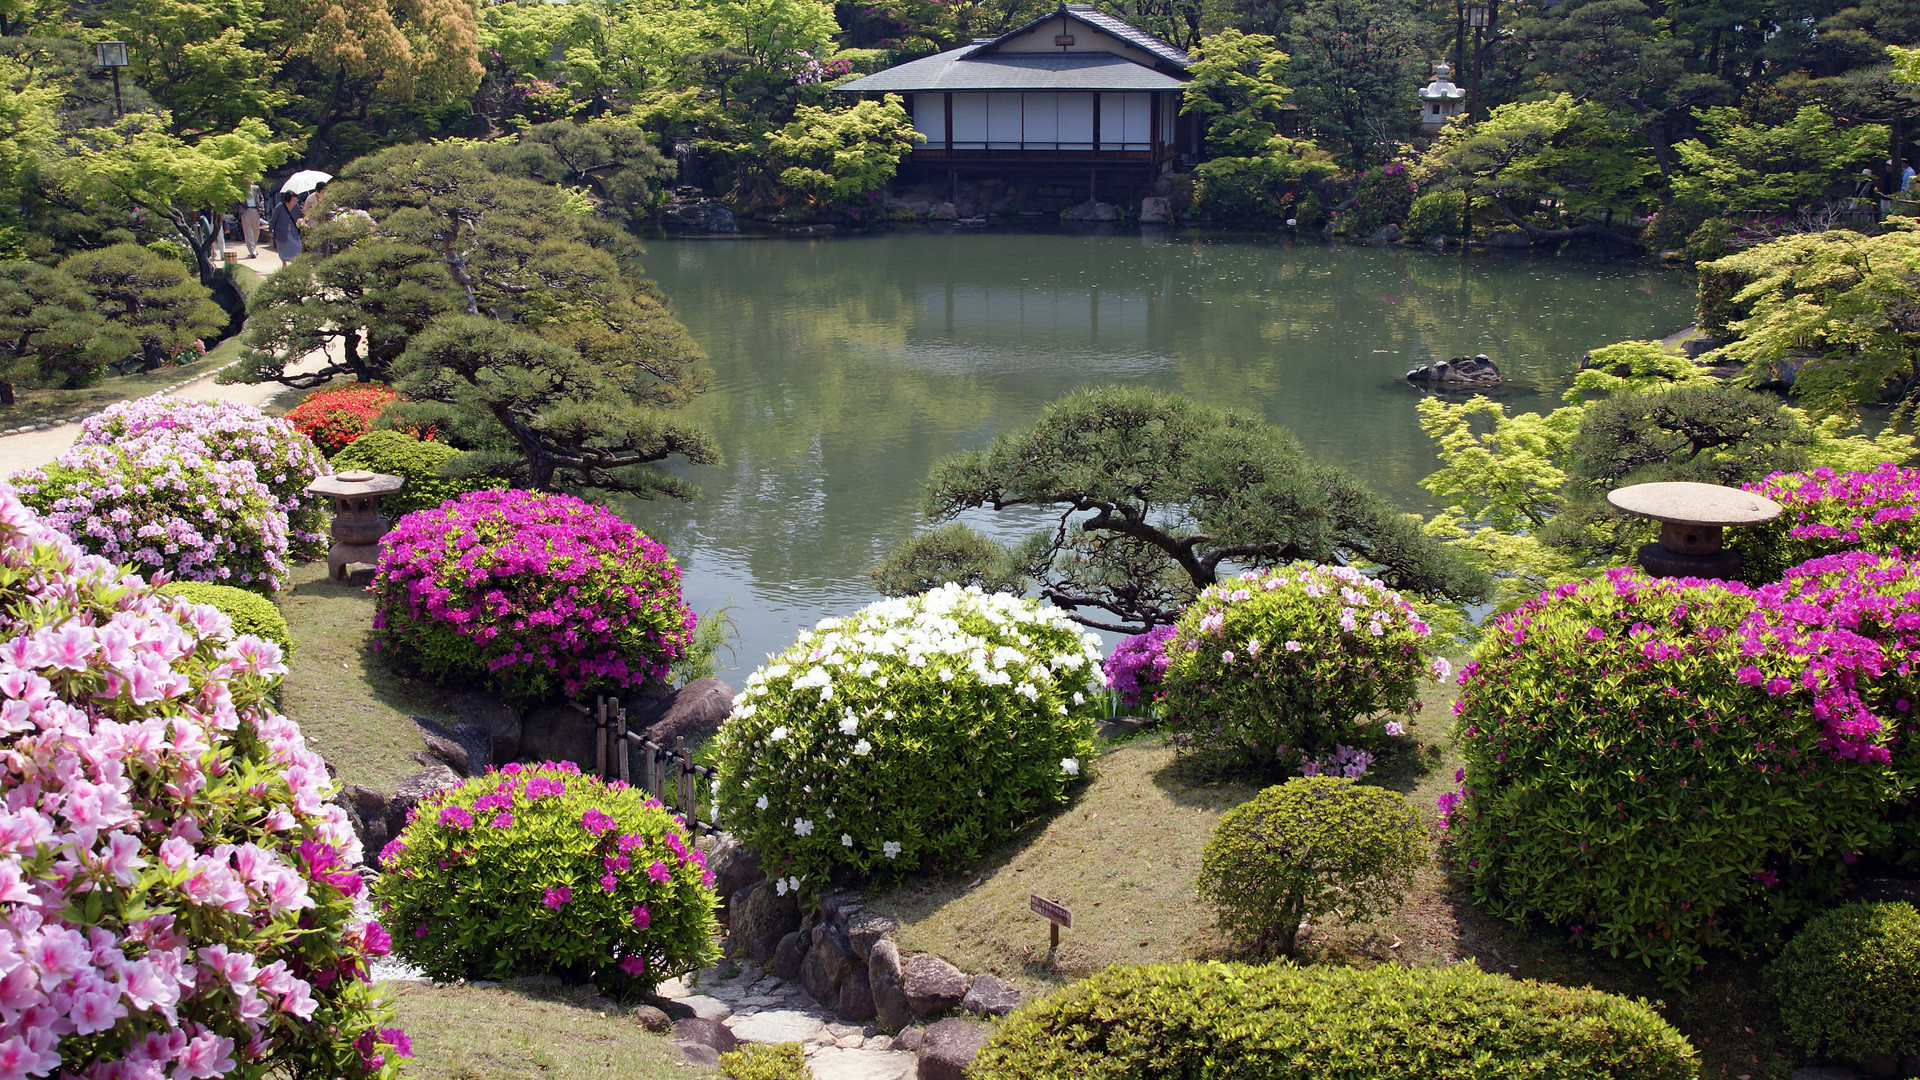 Japanese Garden Wallpapers: Japanese Garden HD Wallpaper (57+ Images